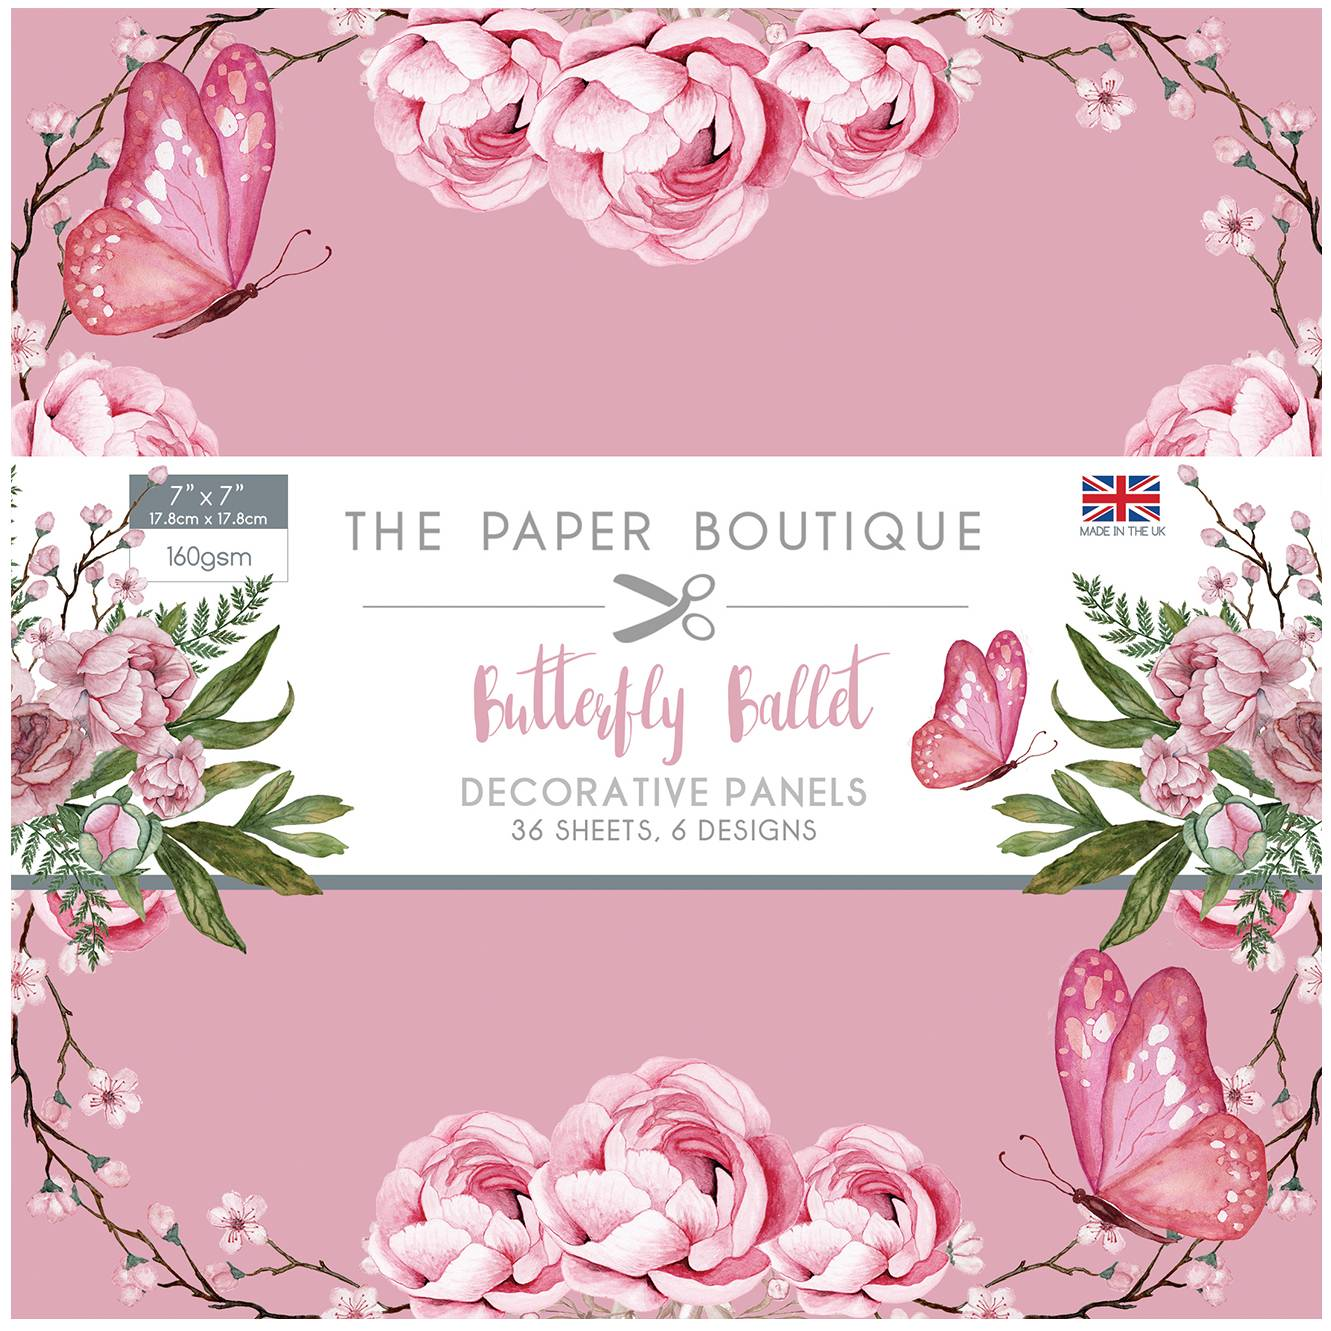 Paper Boutique Butterfly Ballet 7x7 Panel Pad